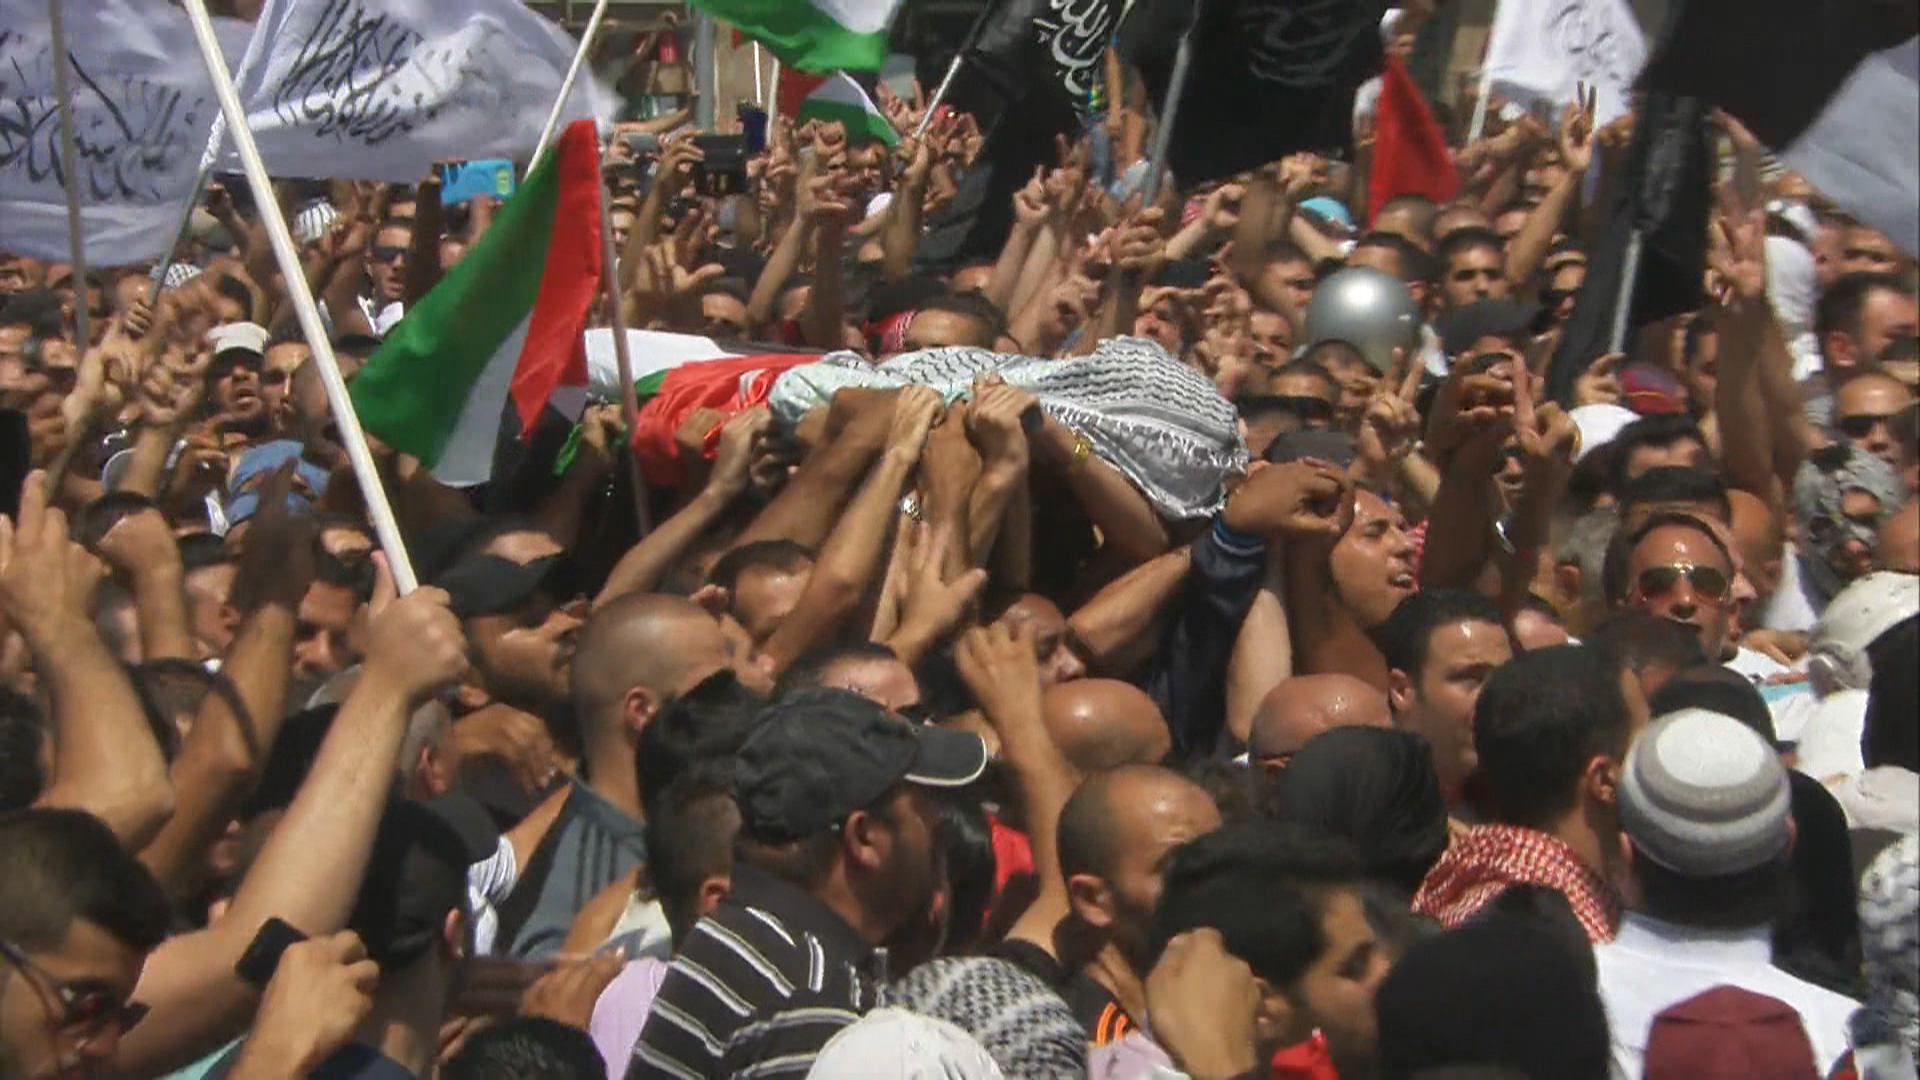 Body of Slain Palestinian Teen Carried Through Tense Jerusalem